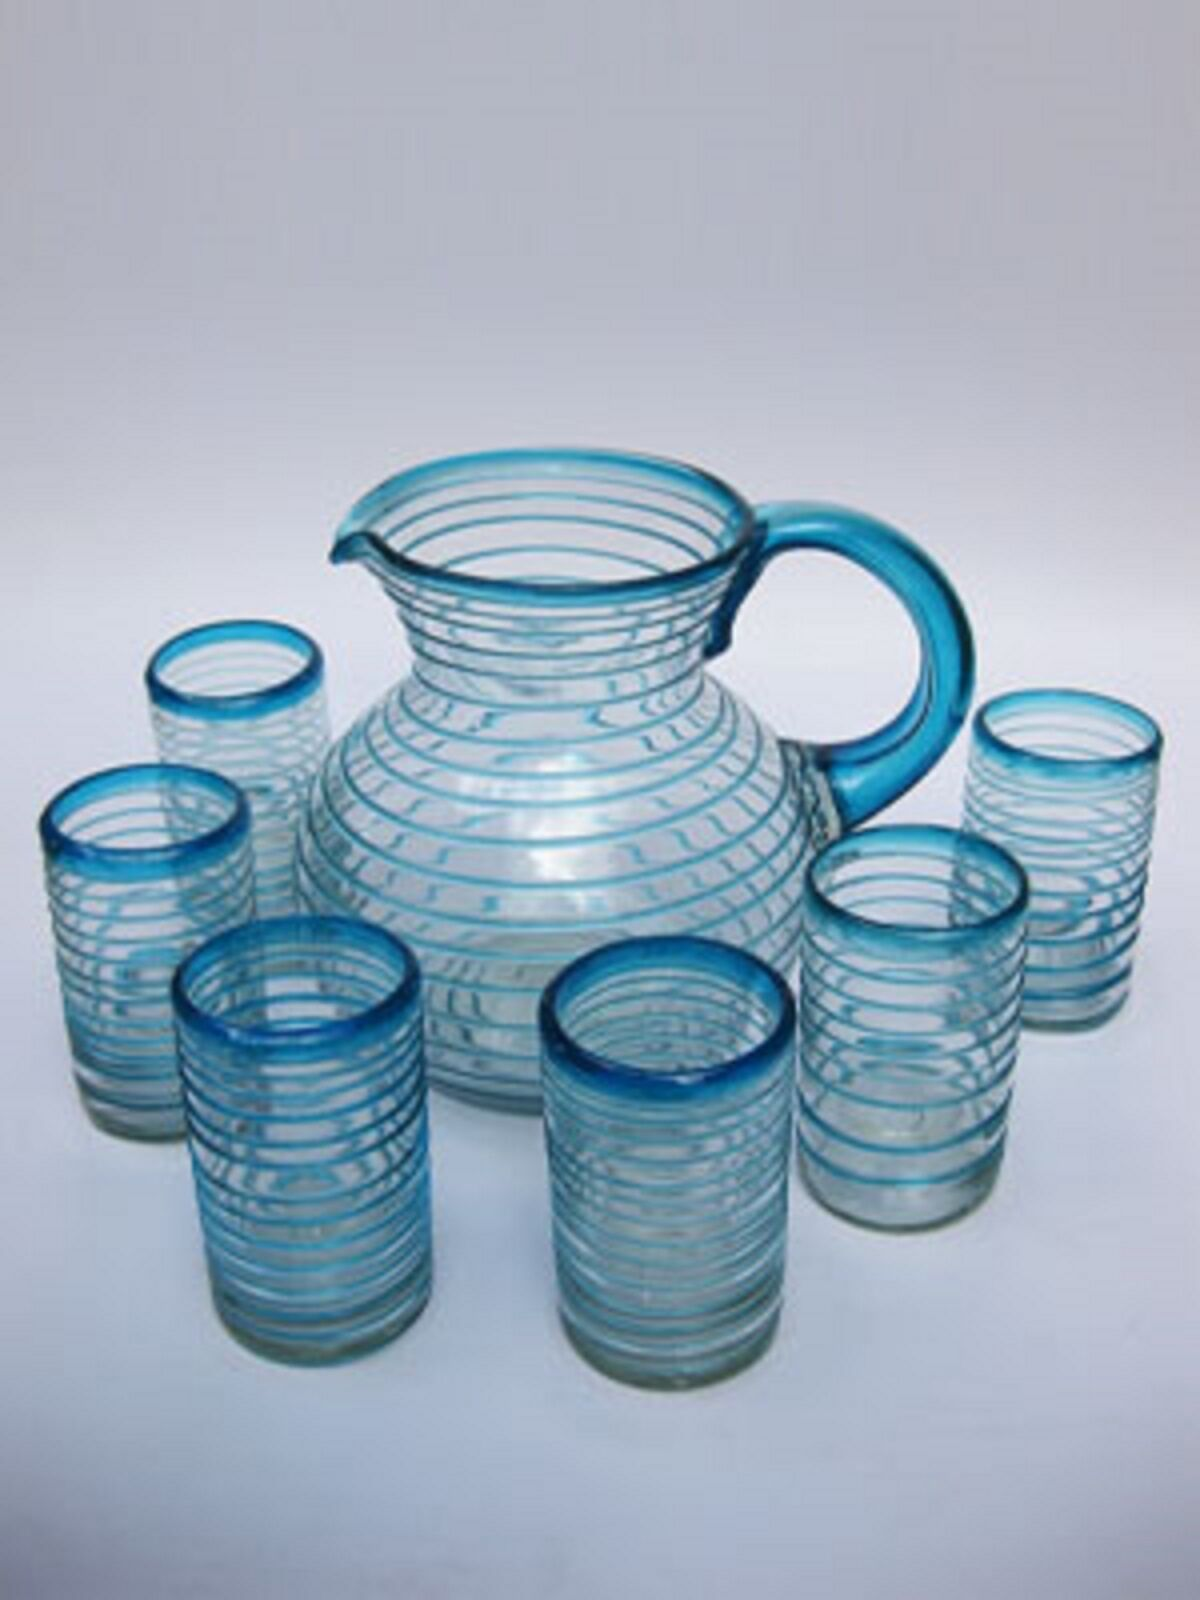 Mexican Glassware - Aqua bluee Spiral pitcher and 6 drinking glasses set